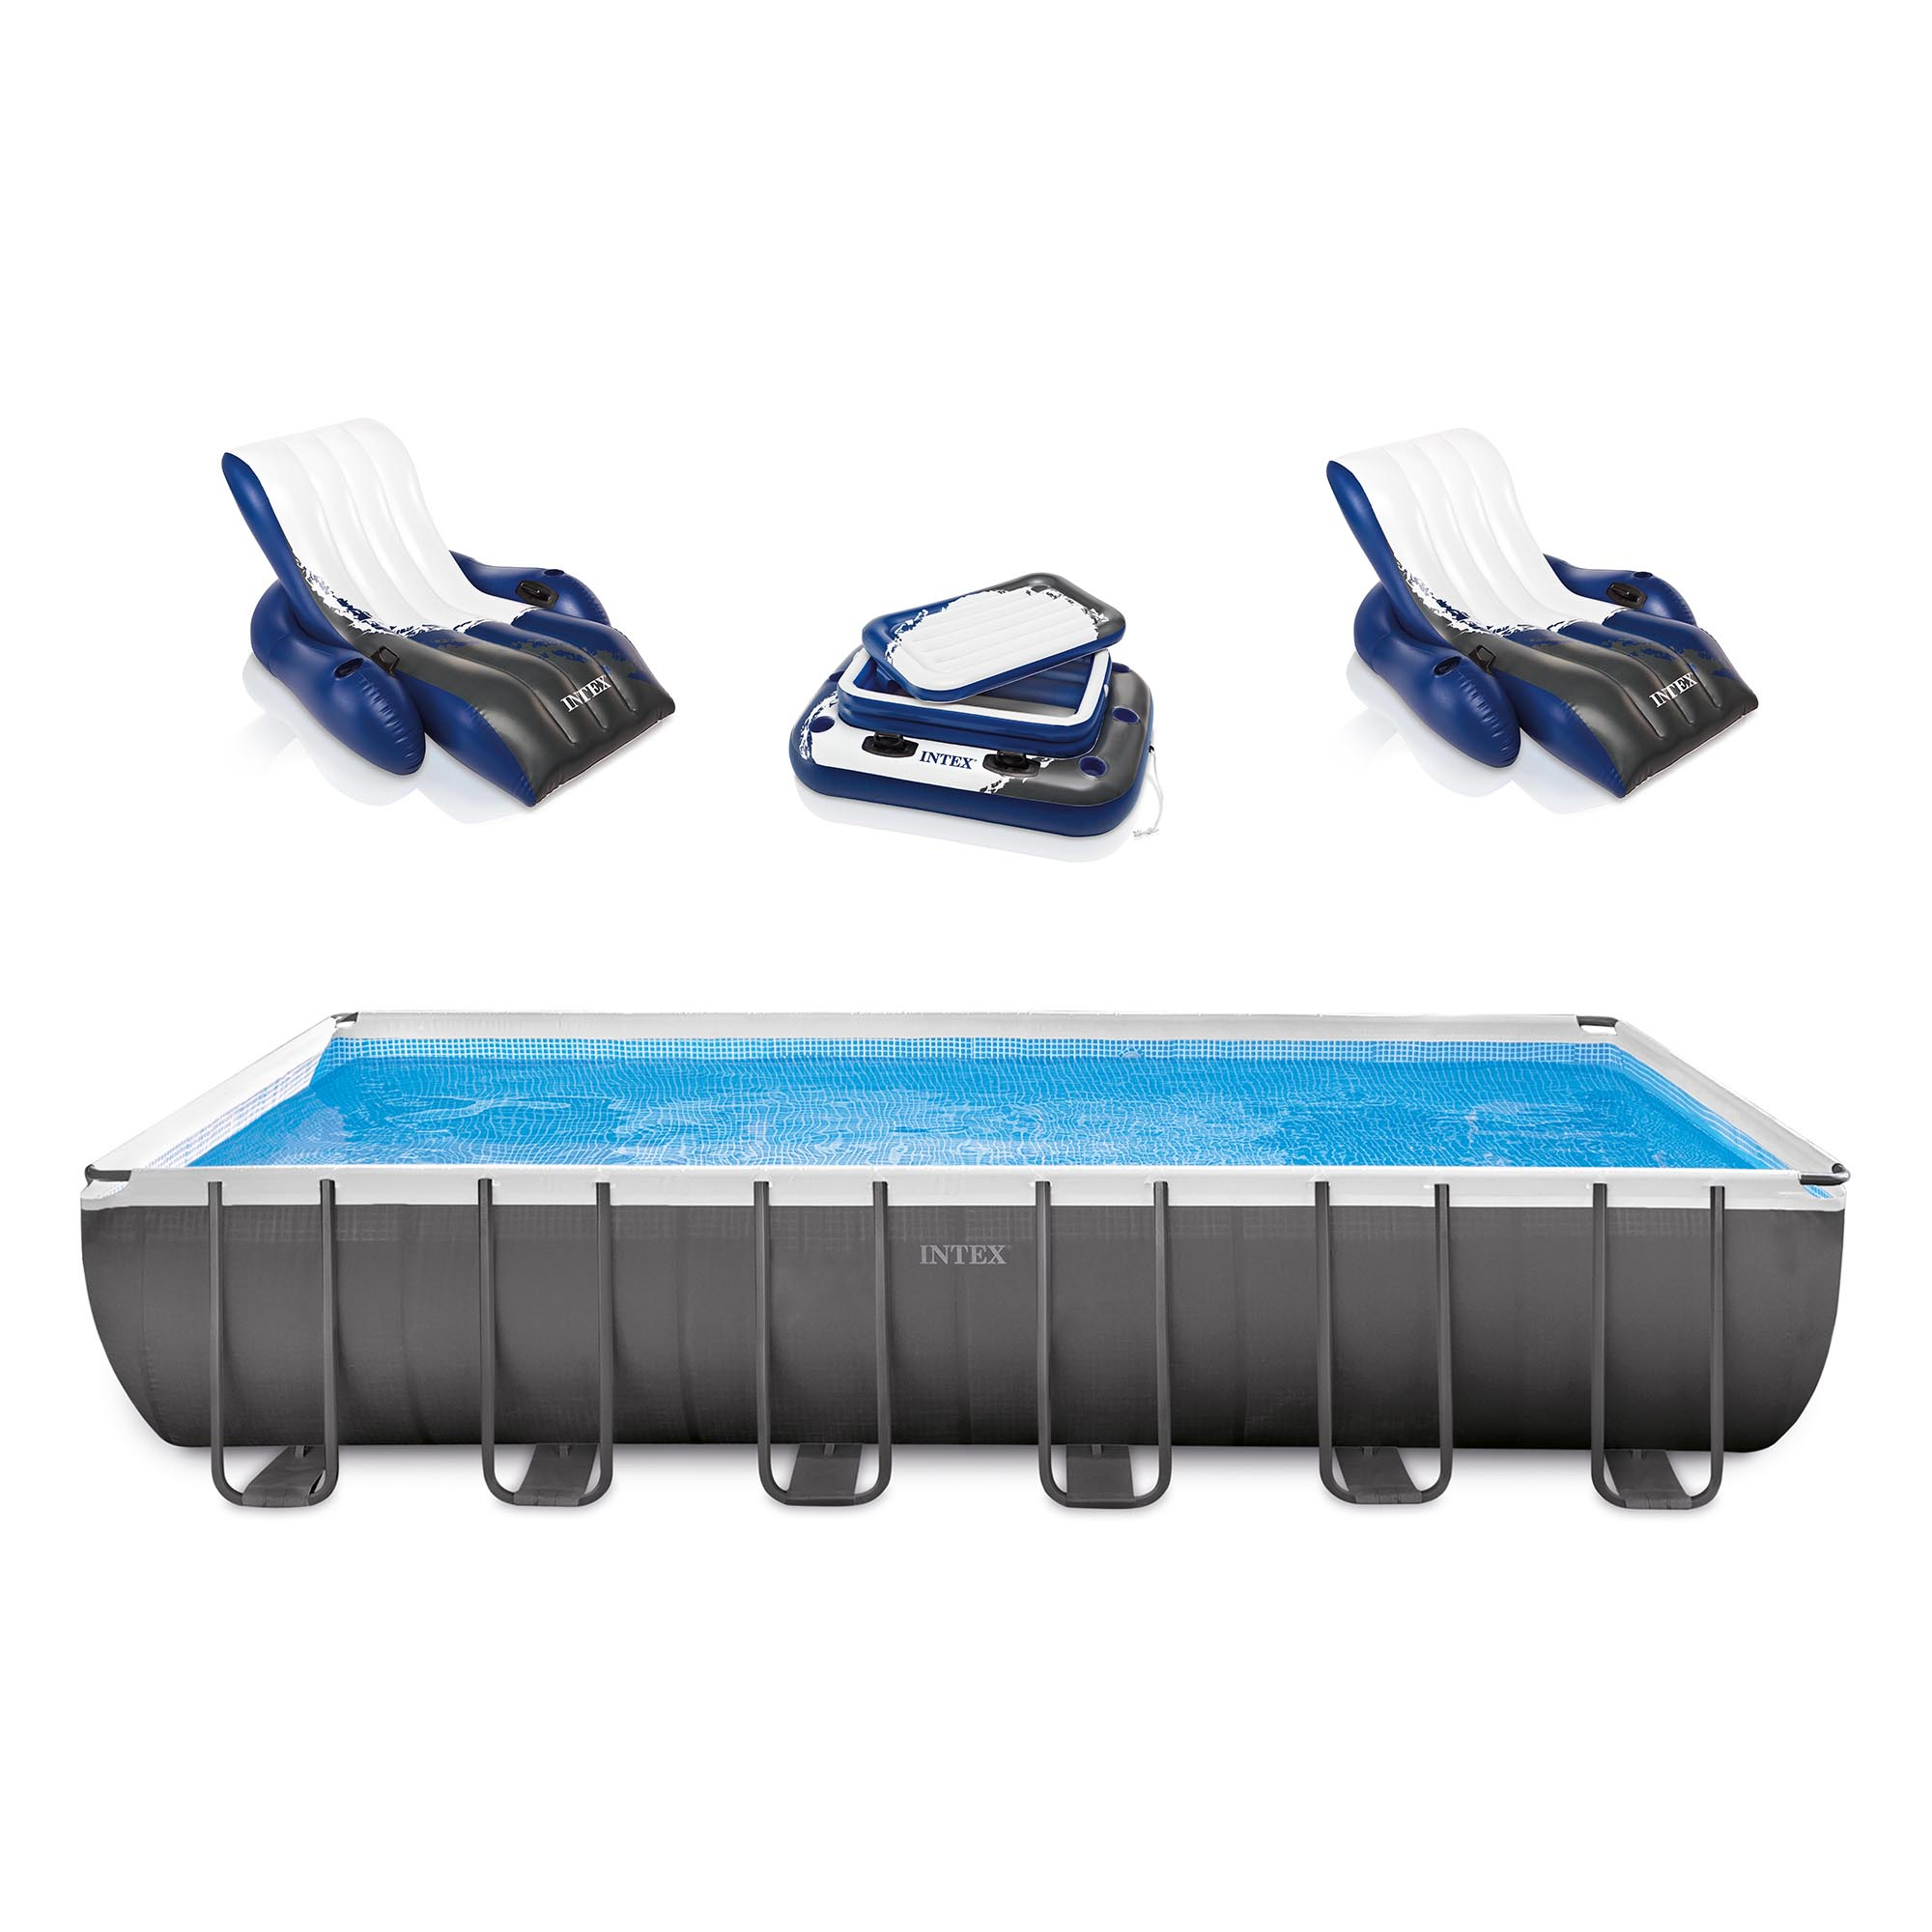 Intex Swimming Pool Set w/ Loungers, Sand Filter Pump, Floating Cooler & Ladder